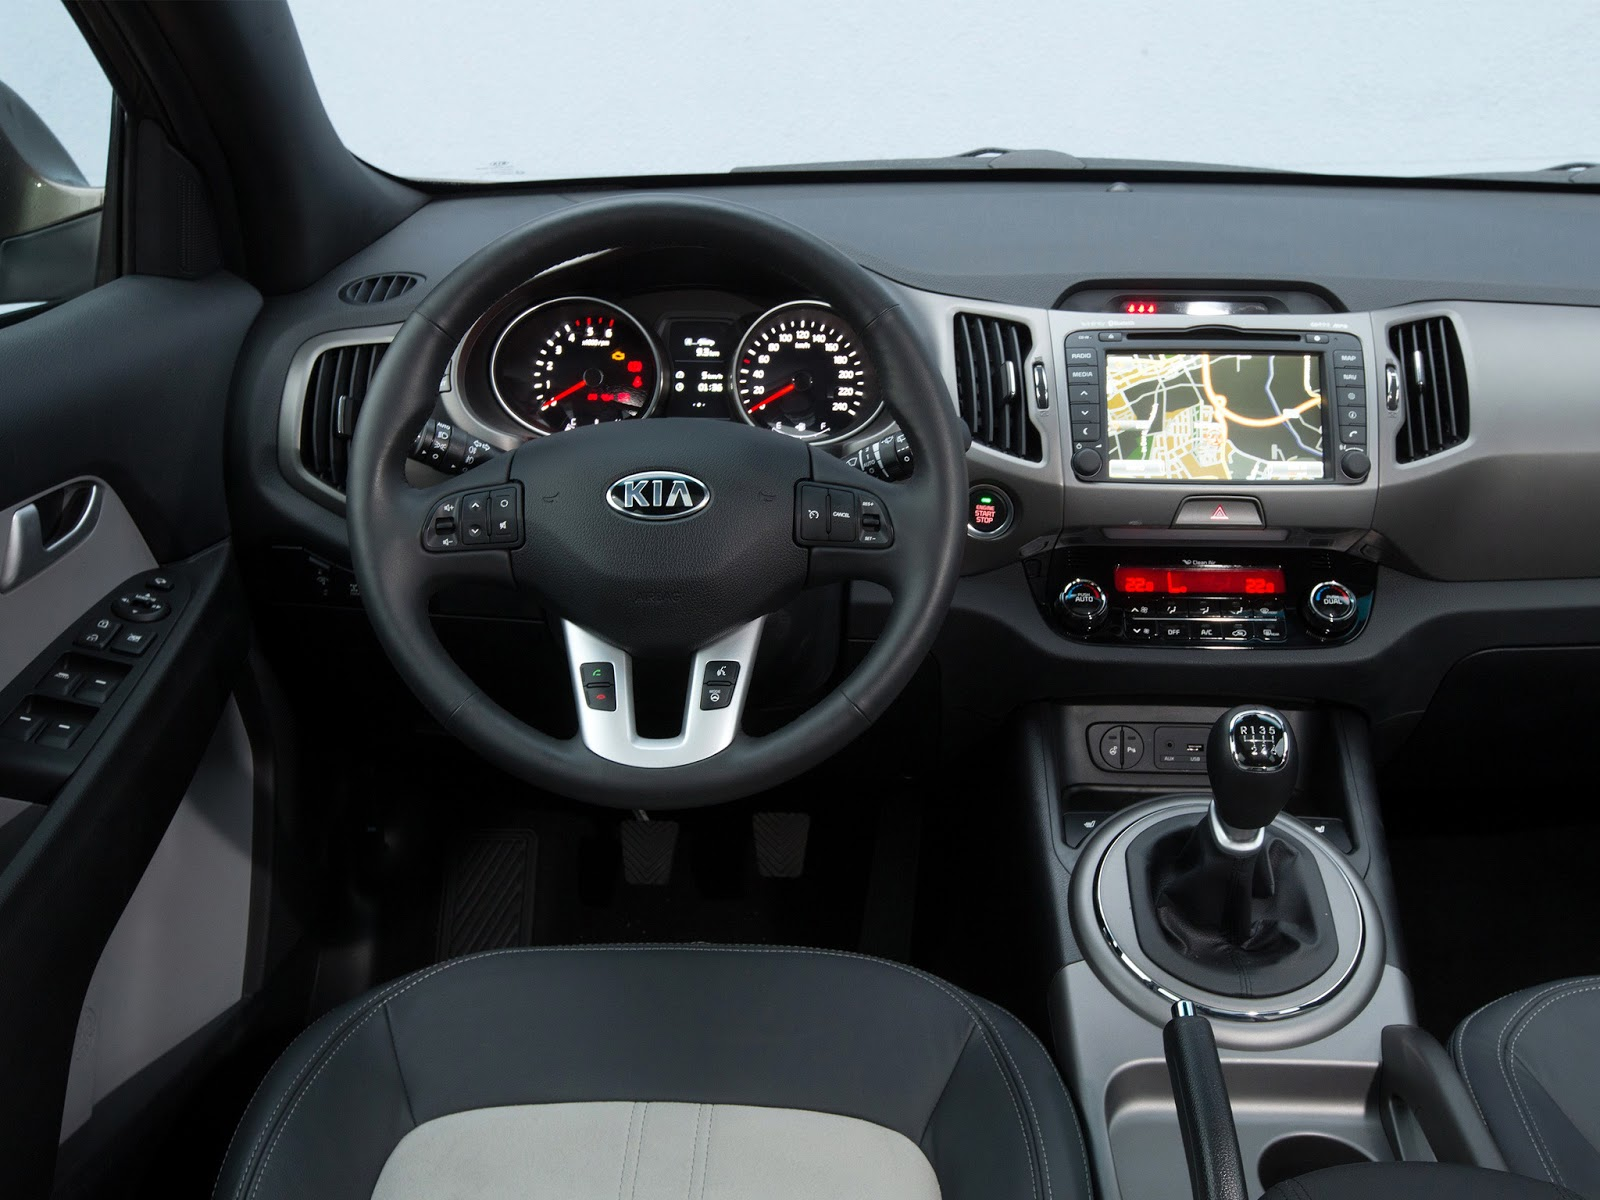 astonishing-design-of-the-silver-and-black-steering-wheels-as-the-kia-sorento-2015-interior-ideas